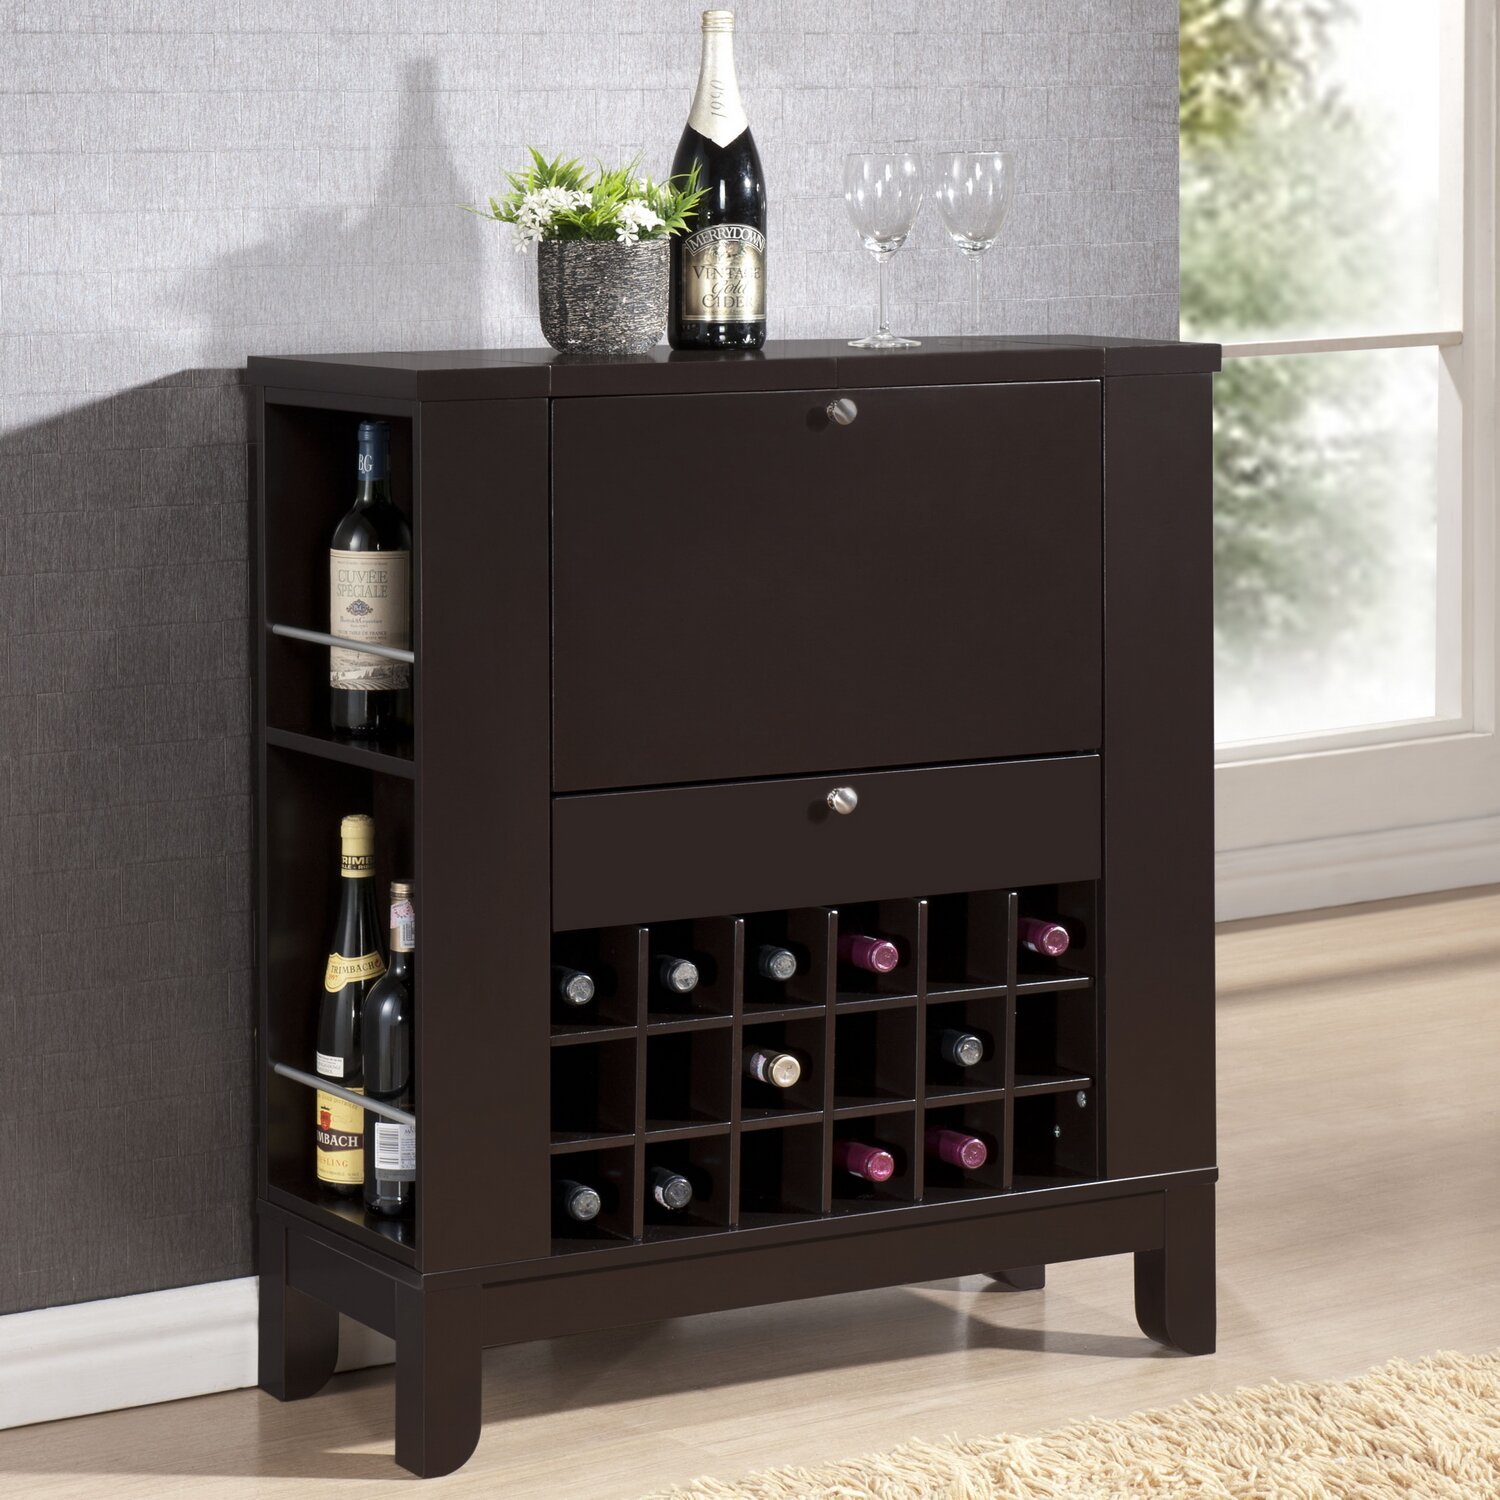 Wholesale Interiors Baxton Studio Wine Bar Reviews Wayfair